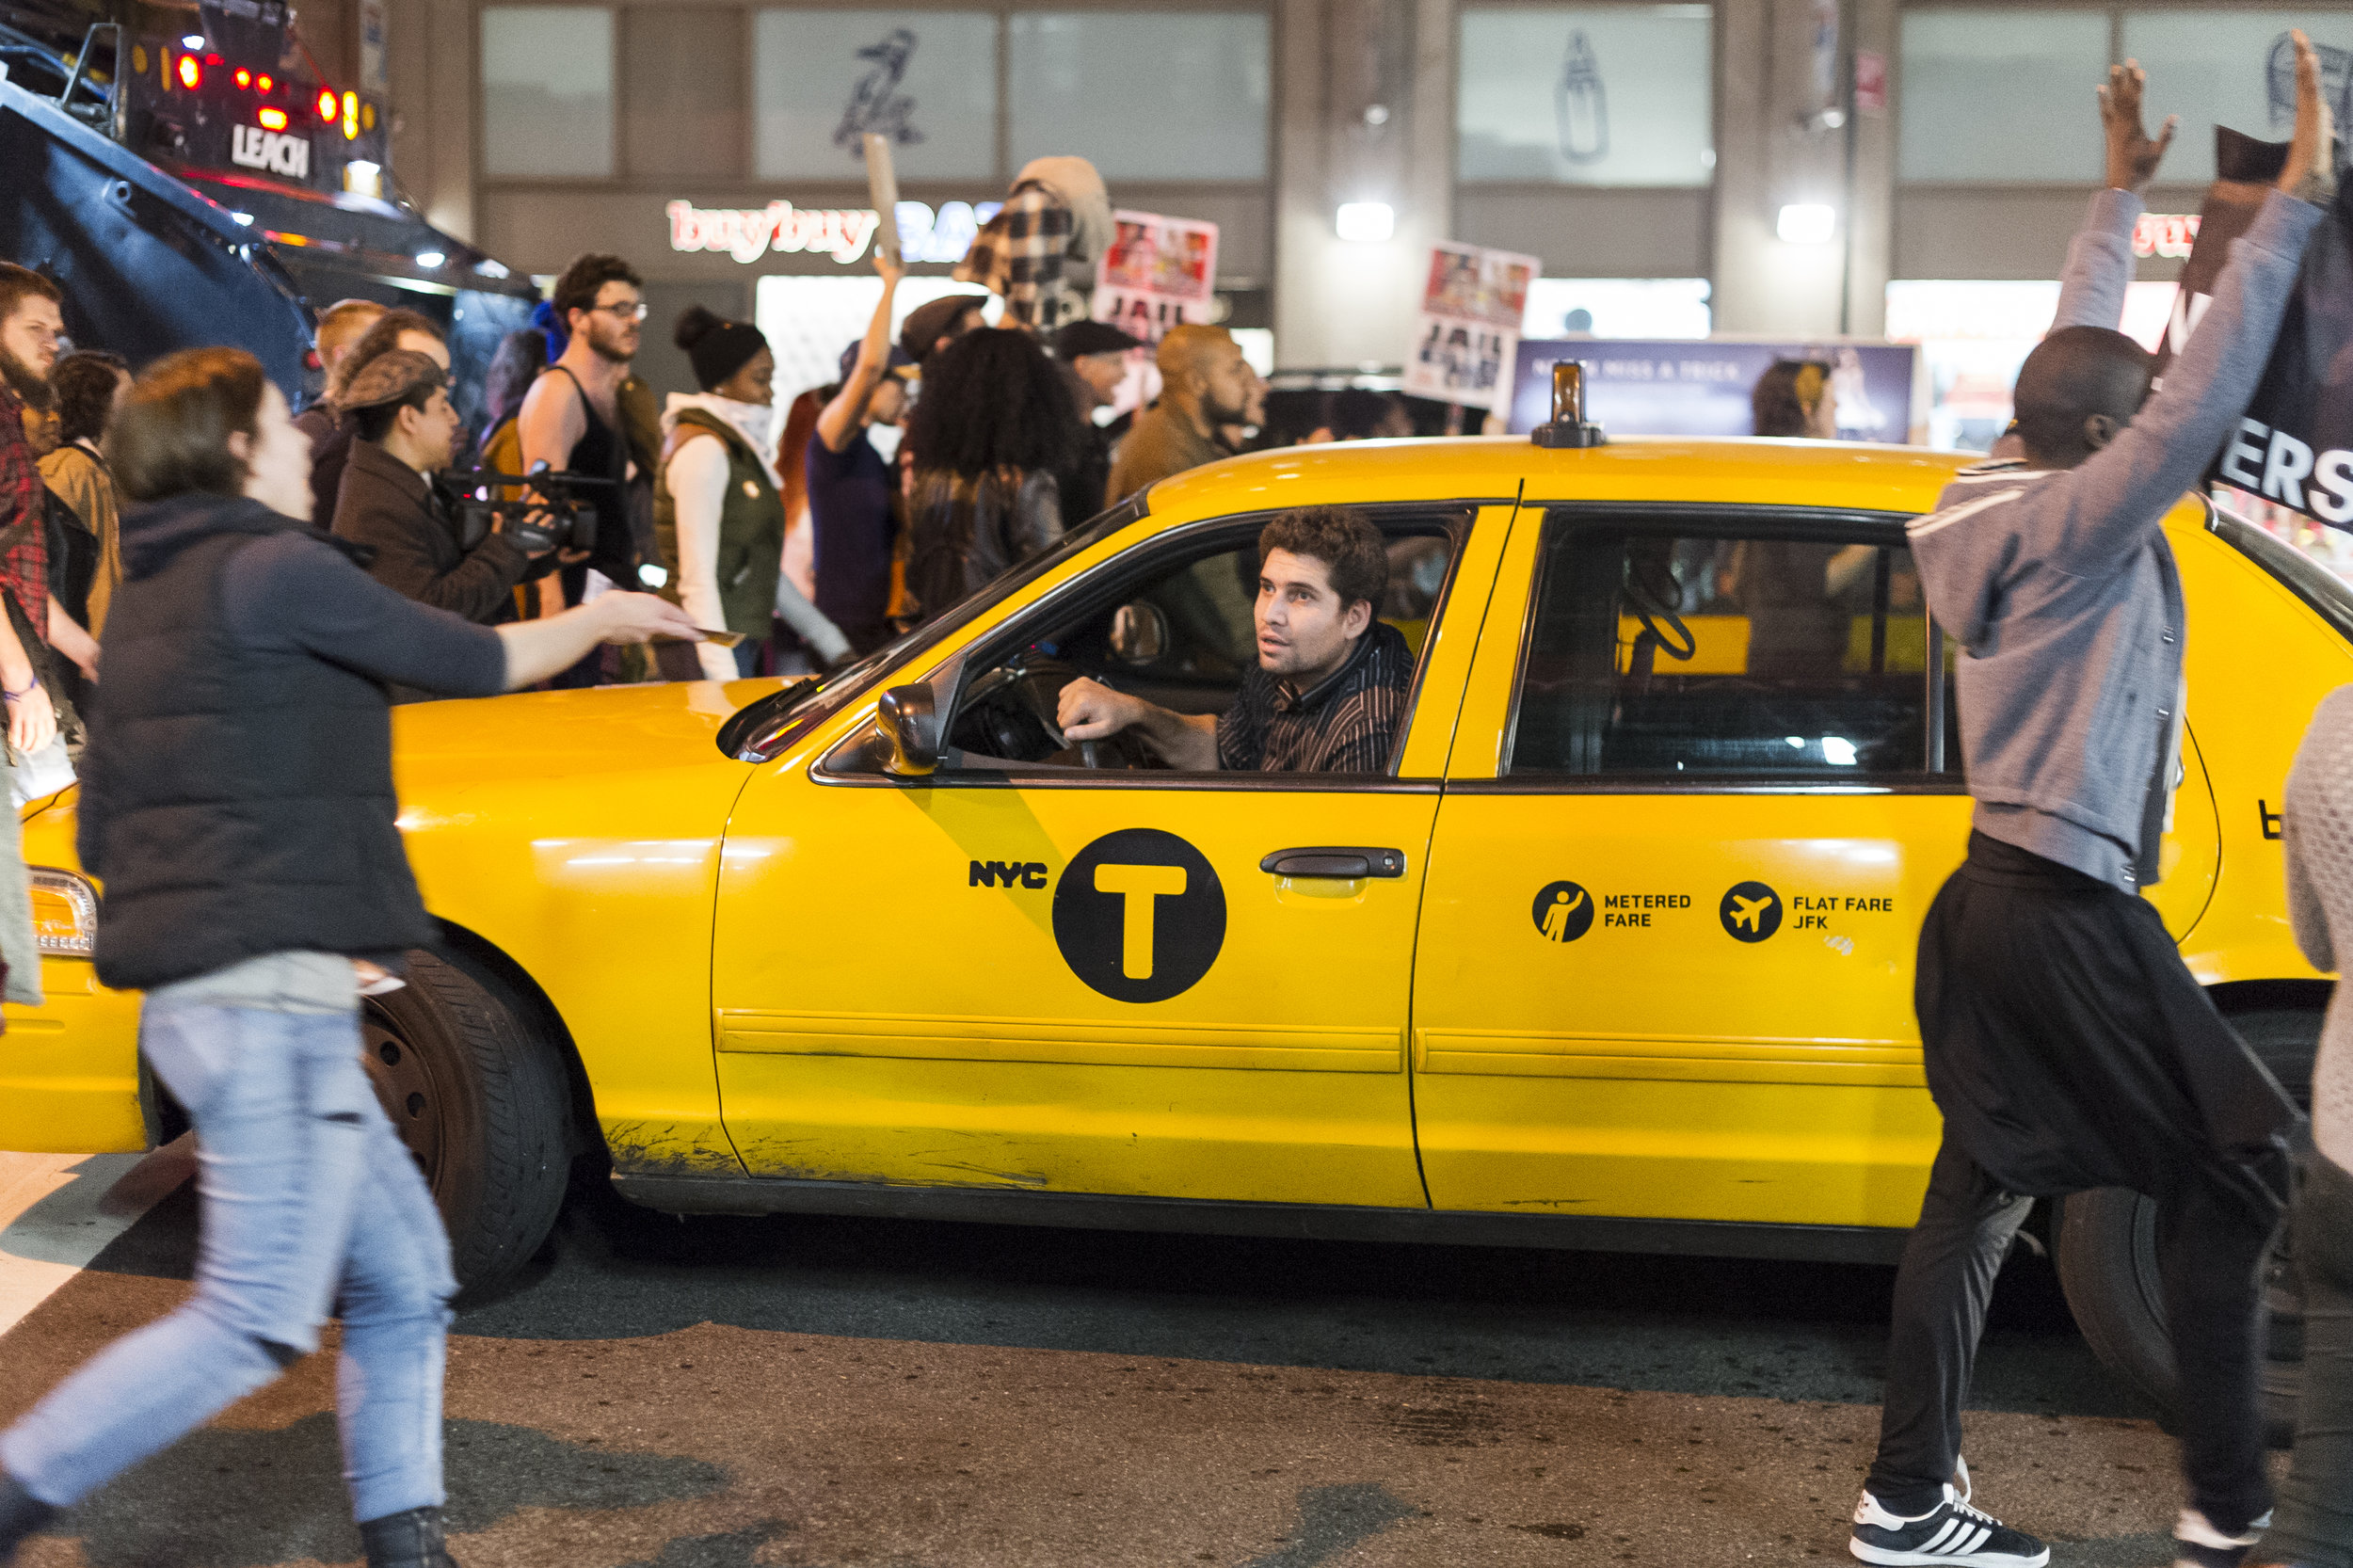 A taxi driver shouts at demonstrators as they block 7th avenue in Manhattan.